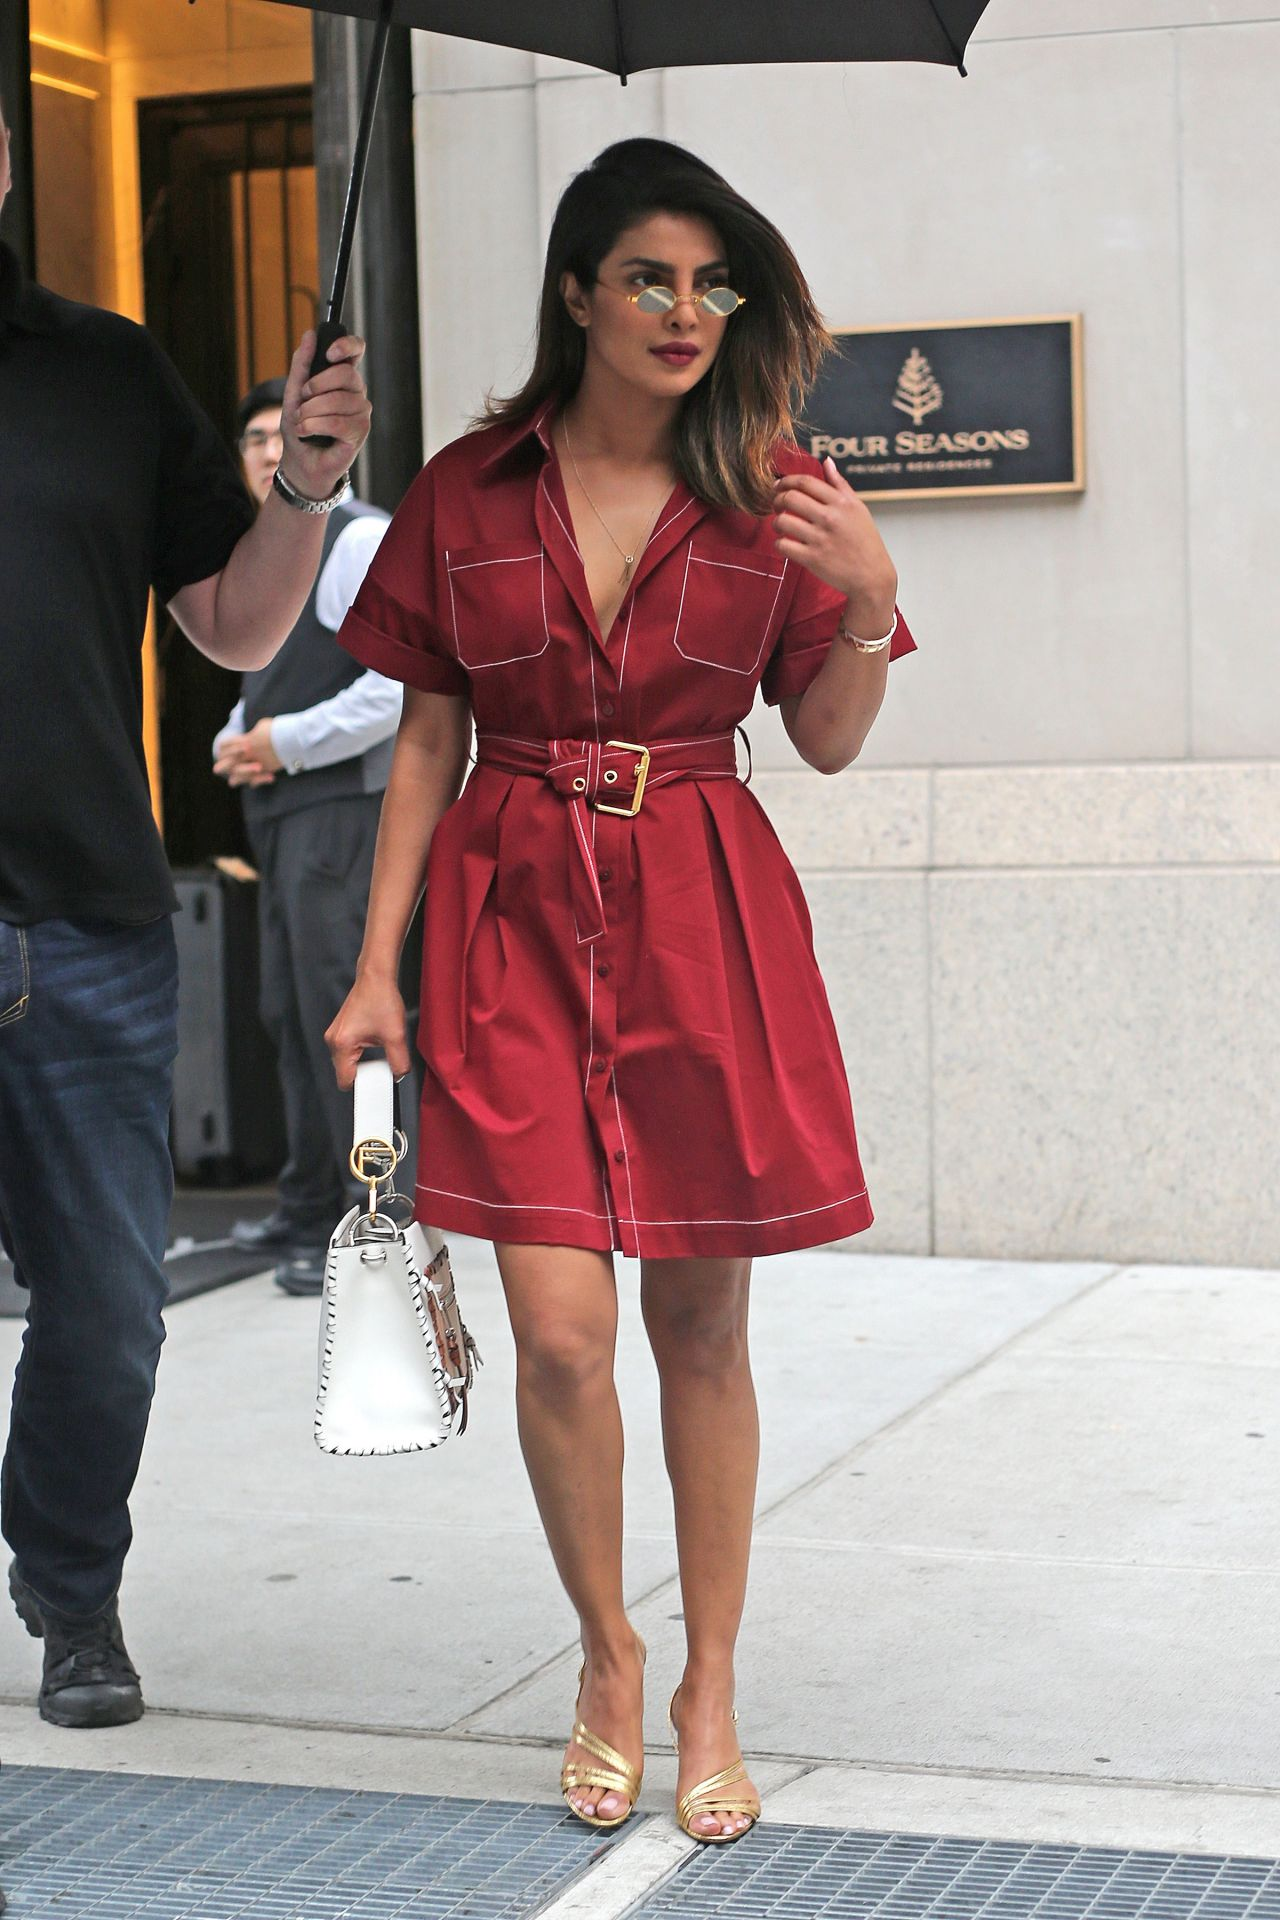 https://celebmafia.com/wp-content/uploads/2018/07/priyanka-chopra-in-a-red-belted-shirt-dress-new-york-city-07-03-2018-0.jpg